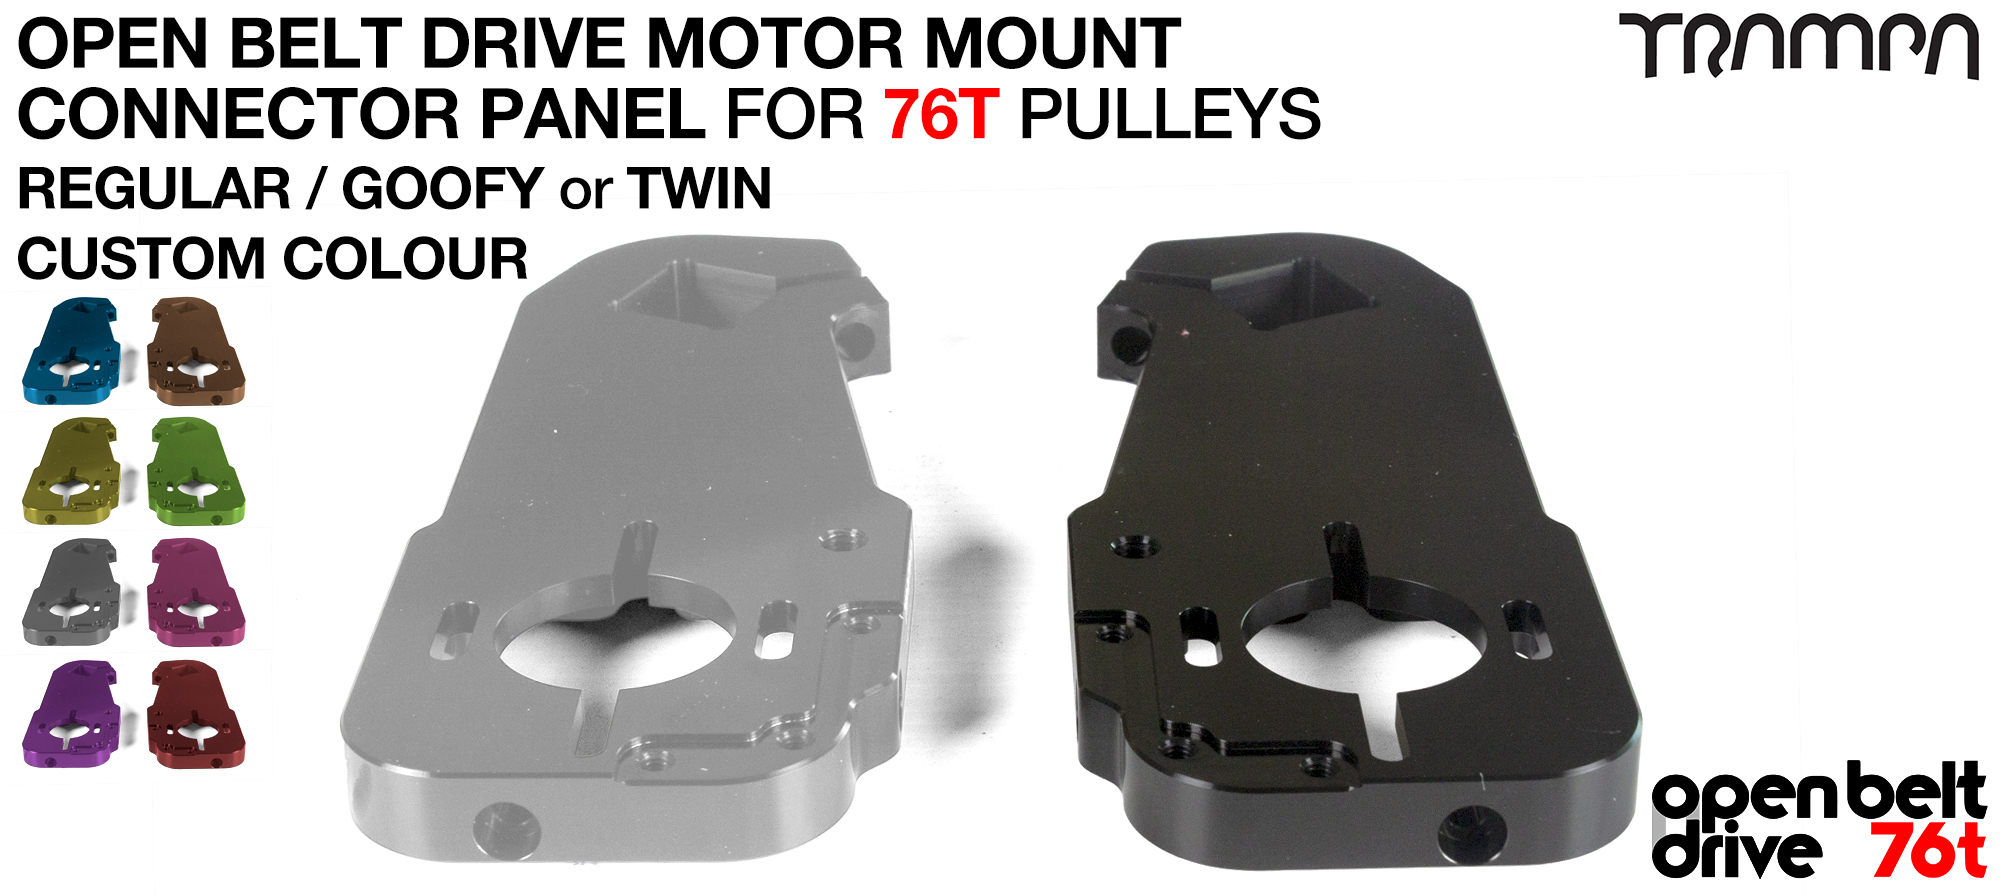 OBD Motor Mount Connector Panel for 76 tooth Pulleys - REGULAR or GOOFY